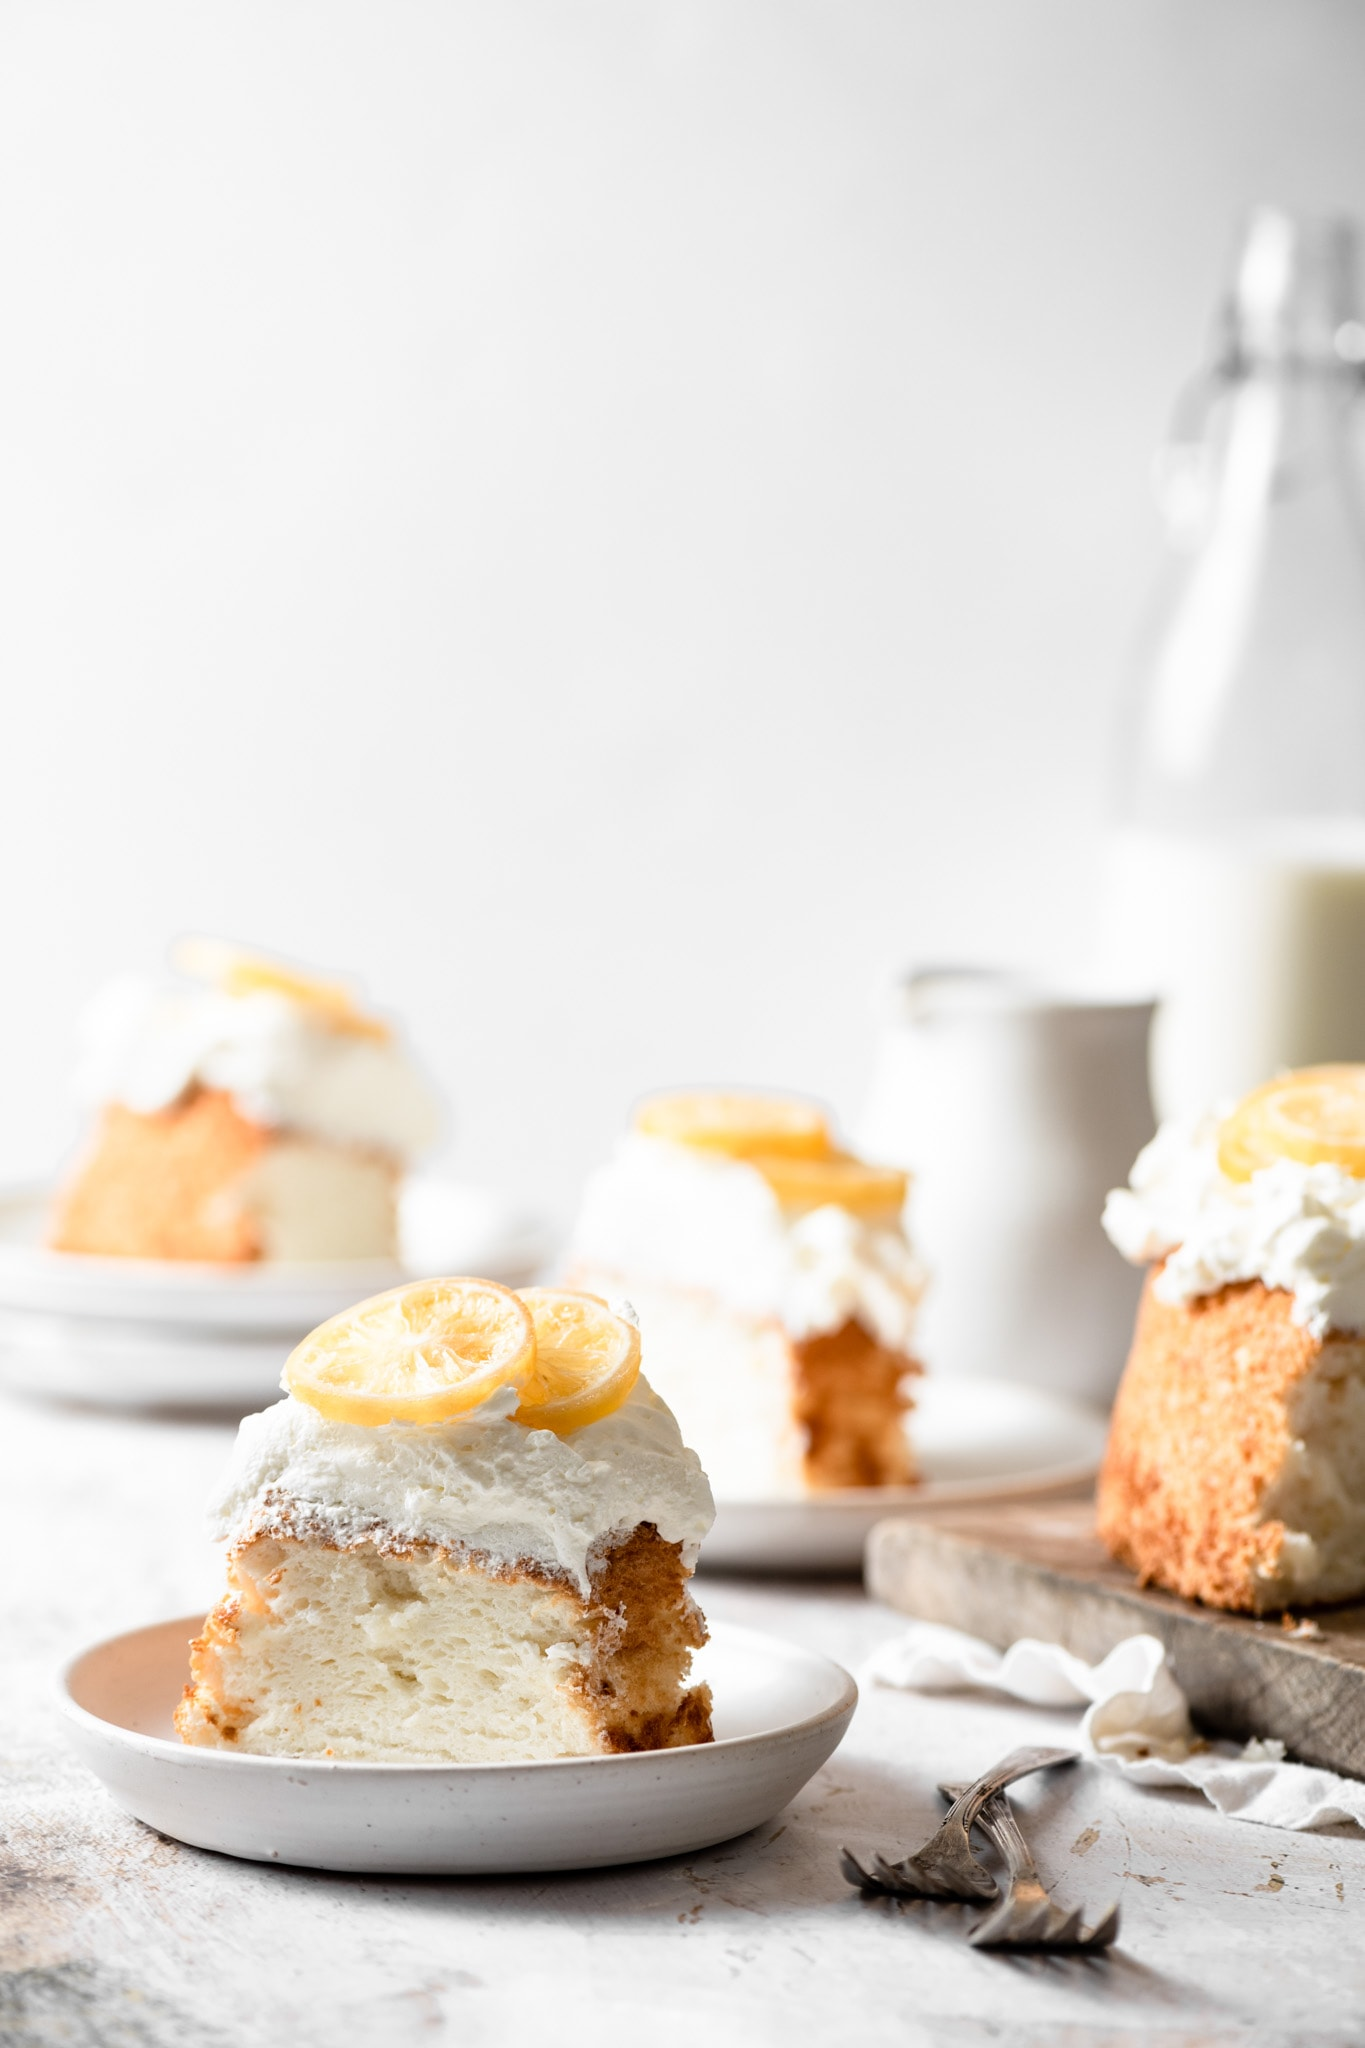 Slices of angel food cake topped with lemons.